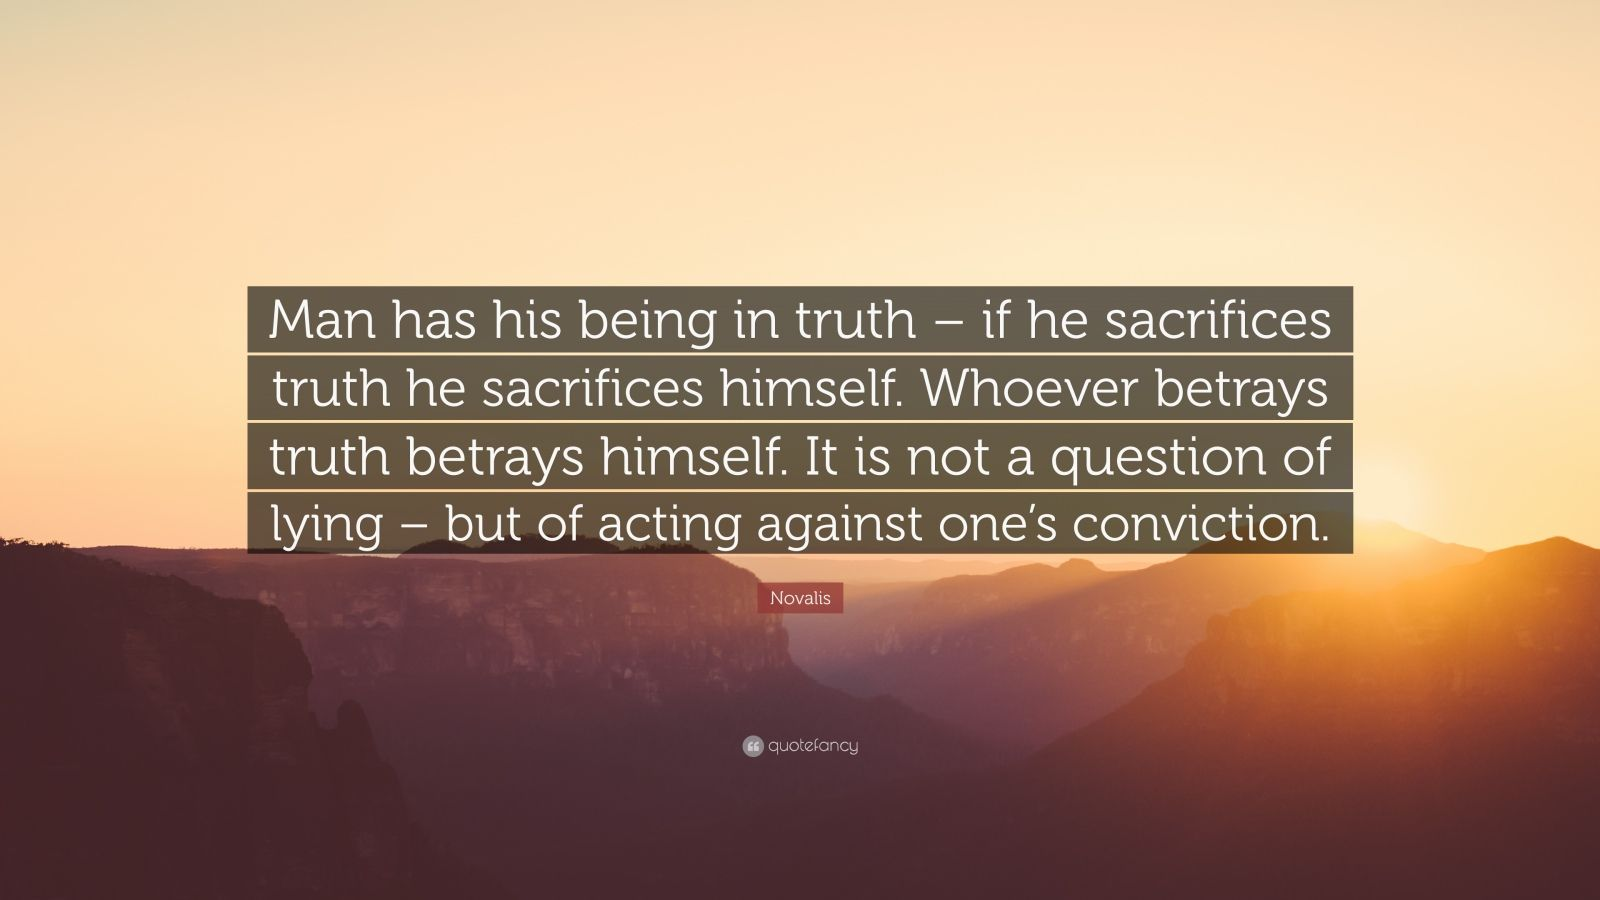 """Novalis Quote: """"Man has his being in truth – if he sacrifices truth he sacrifices himself. Whoever betrays truth betrays himself. It is not a question of lying – but of acting against one's conviction."""""""